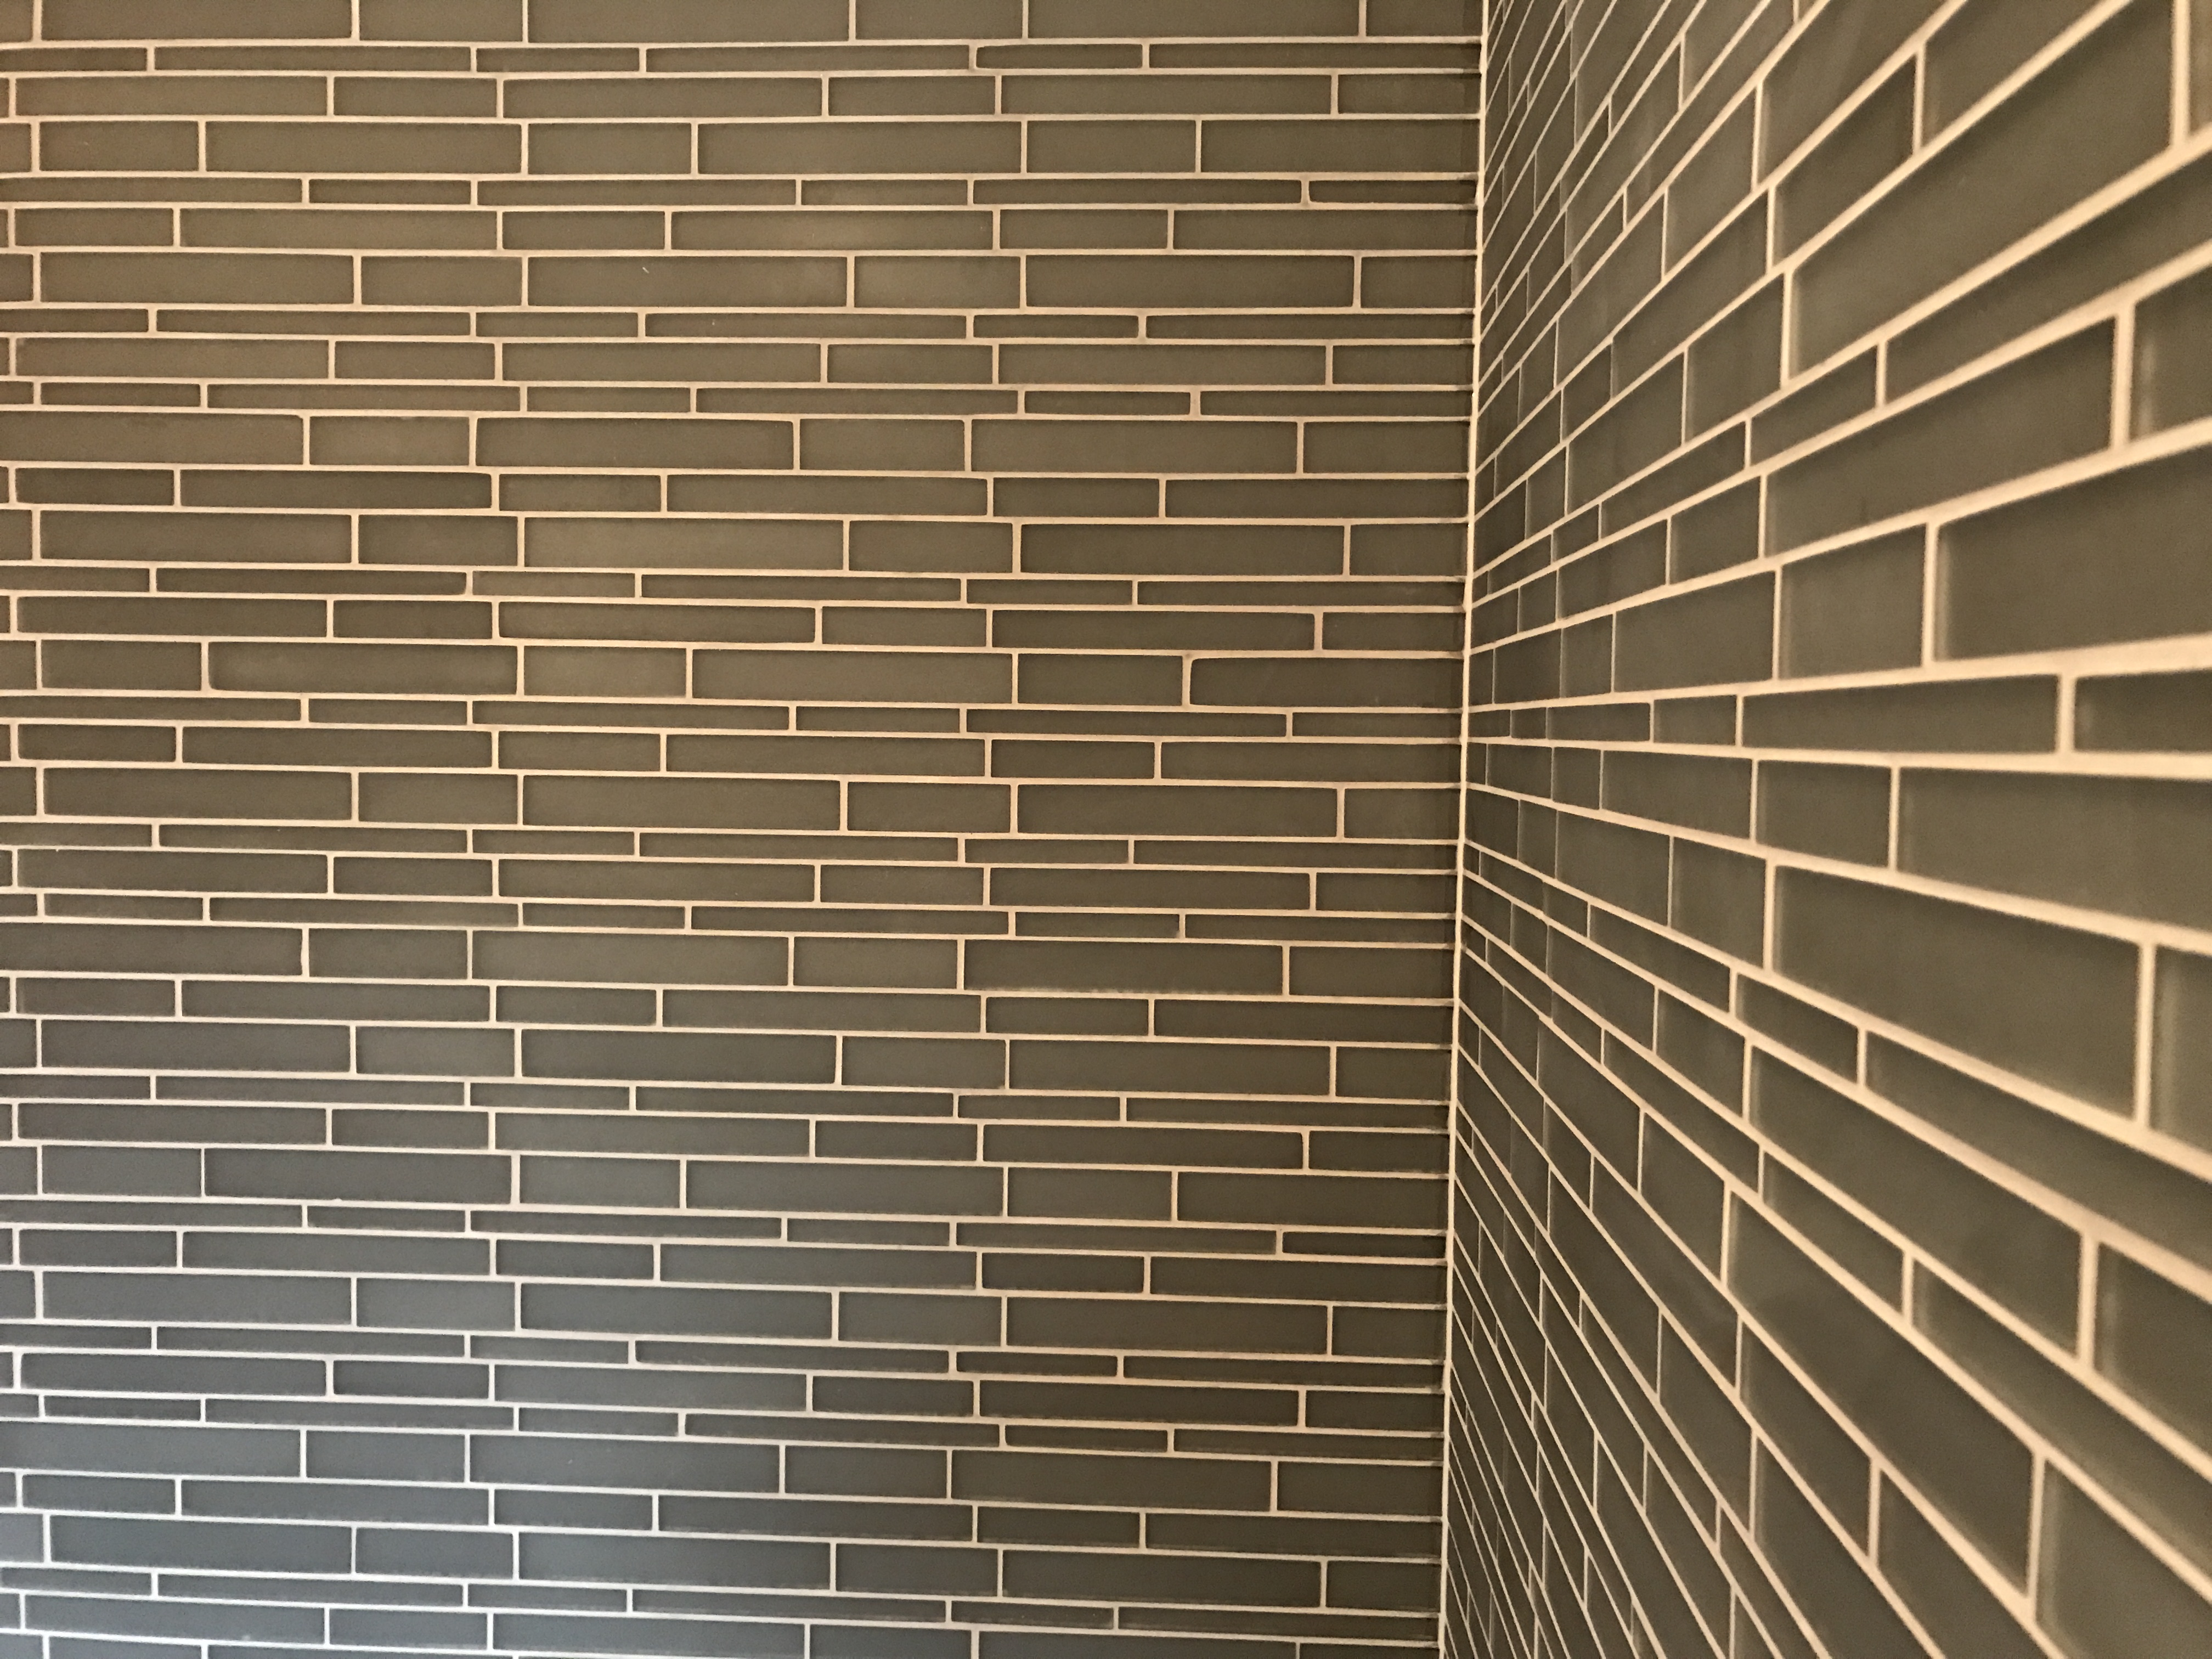 matte grey glass mosaics from Topps Tiles in Chesterfield. Installed by Andy Coldwell Tiling in Chesterfield